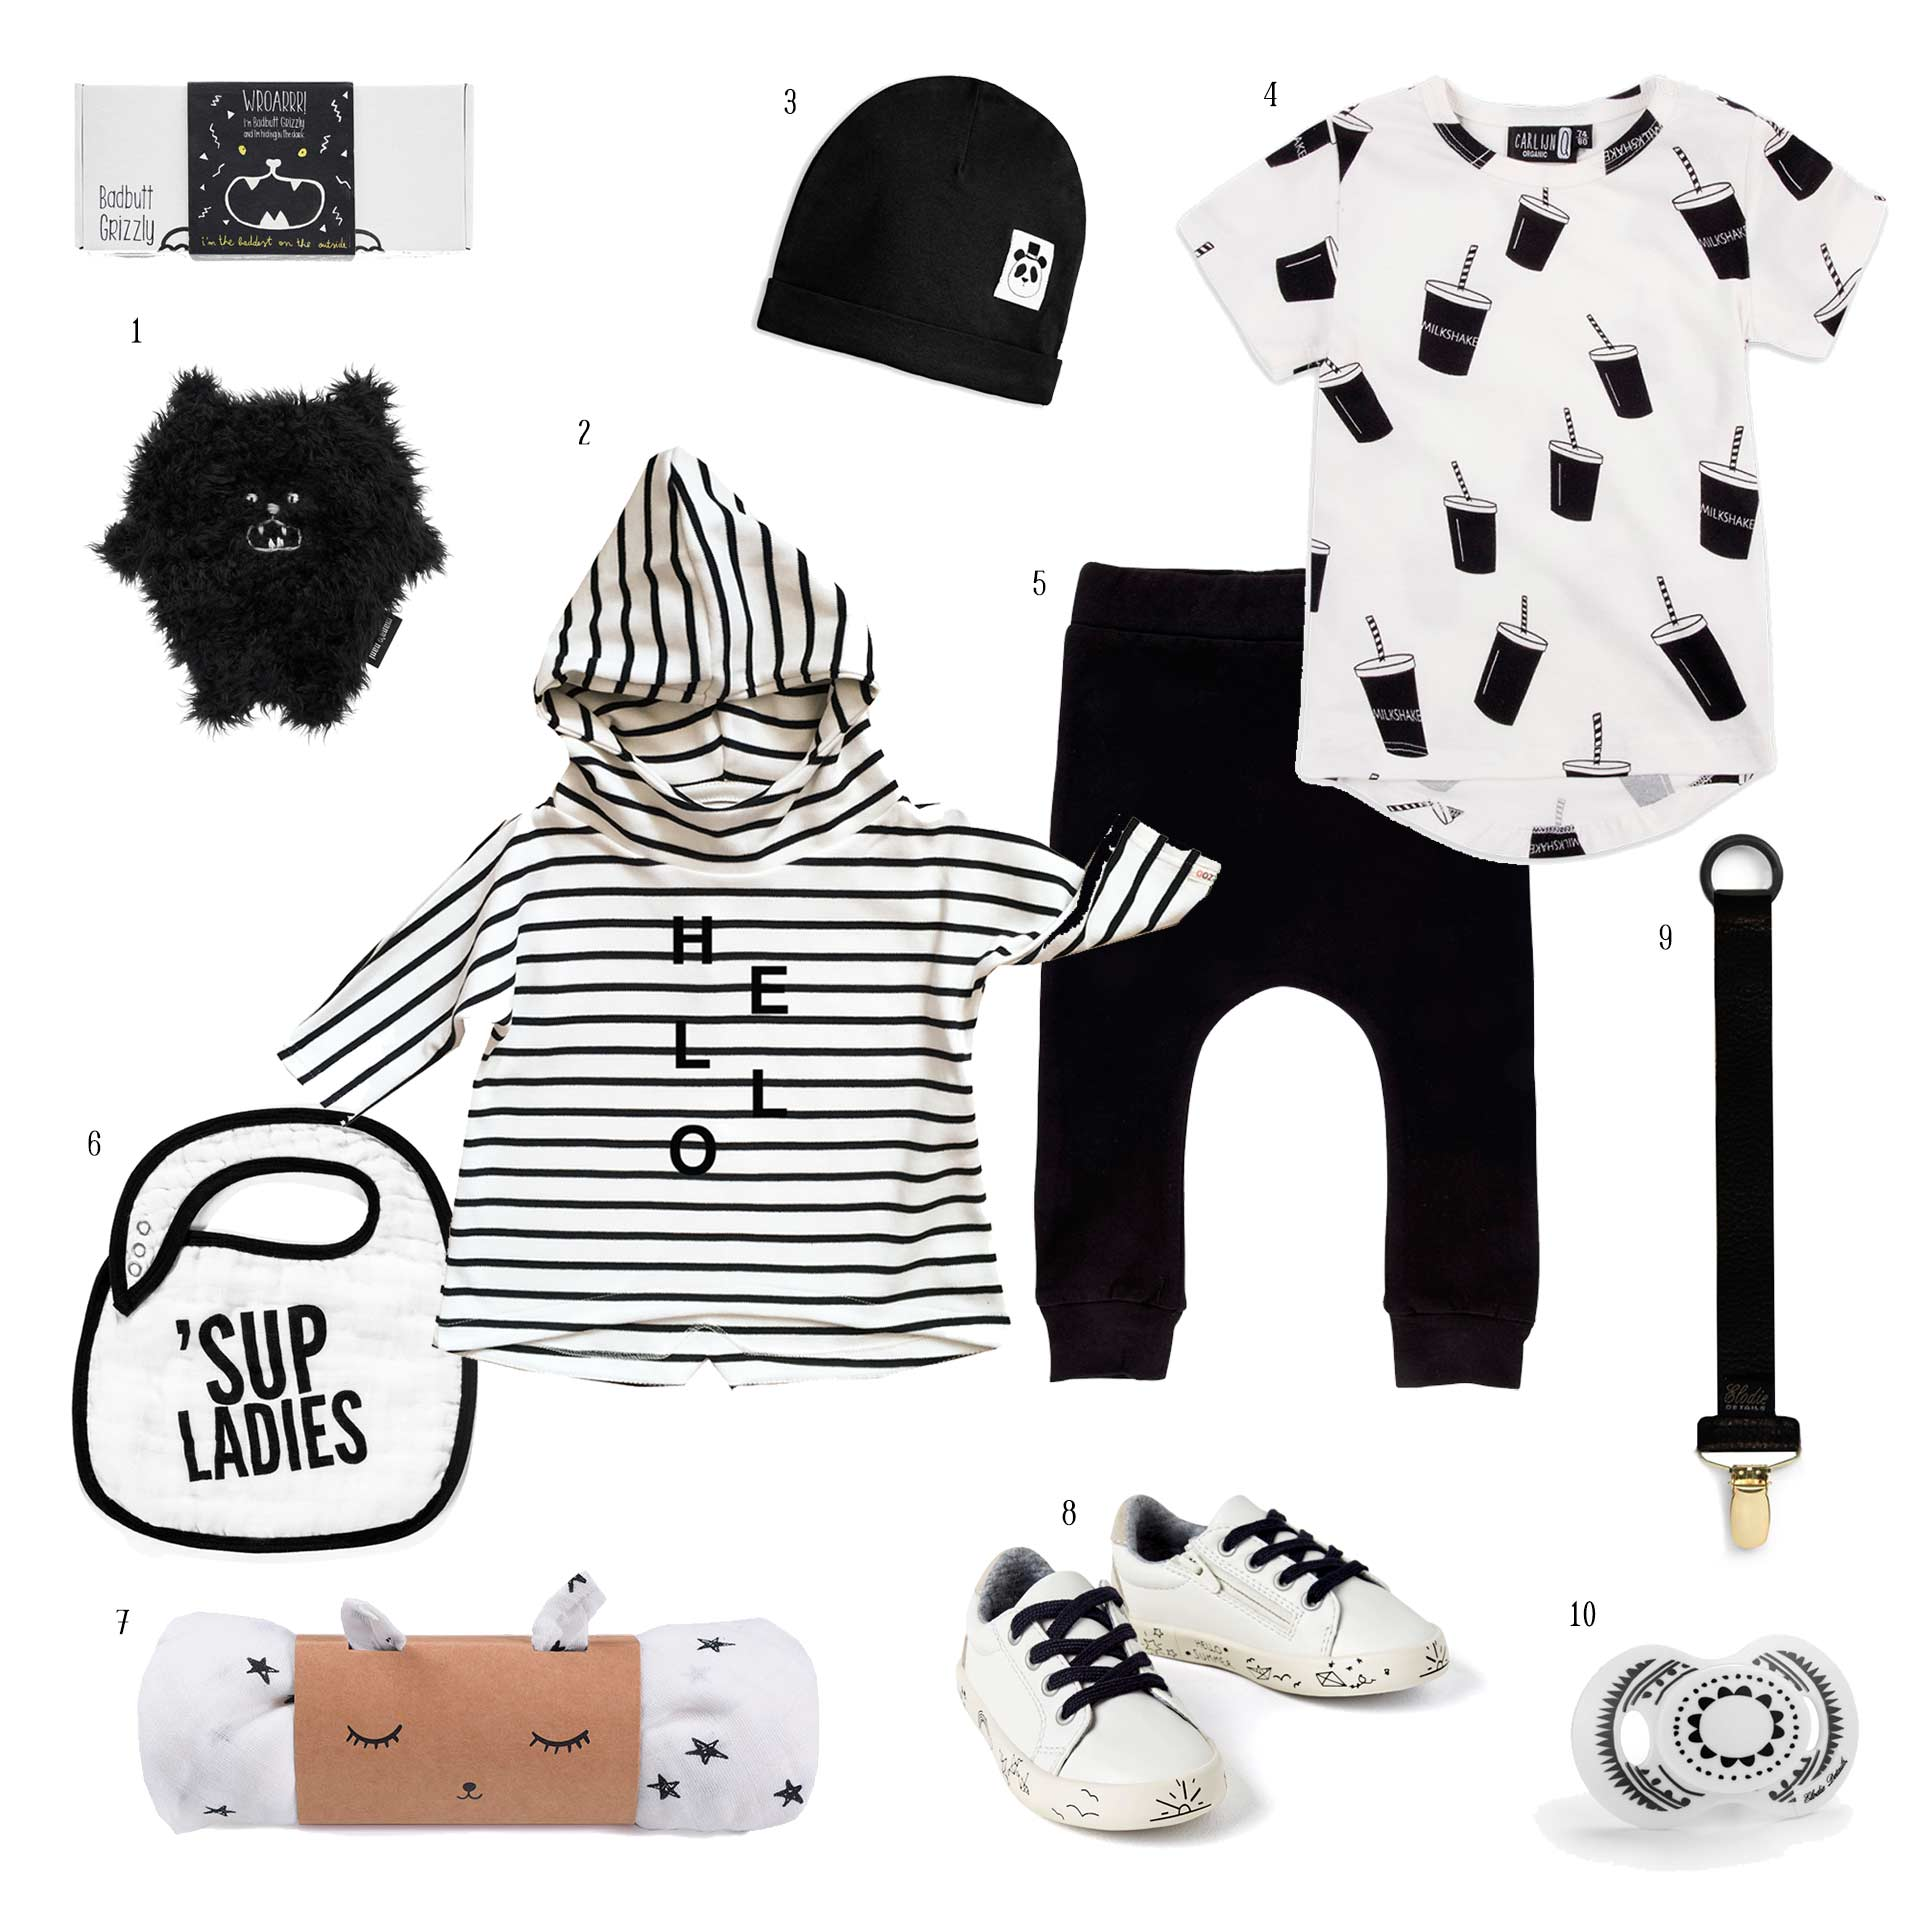 OUTFIT «B&W BABY» BY ME